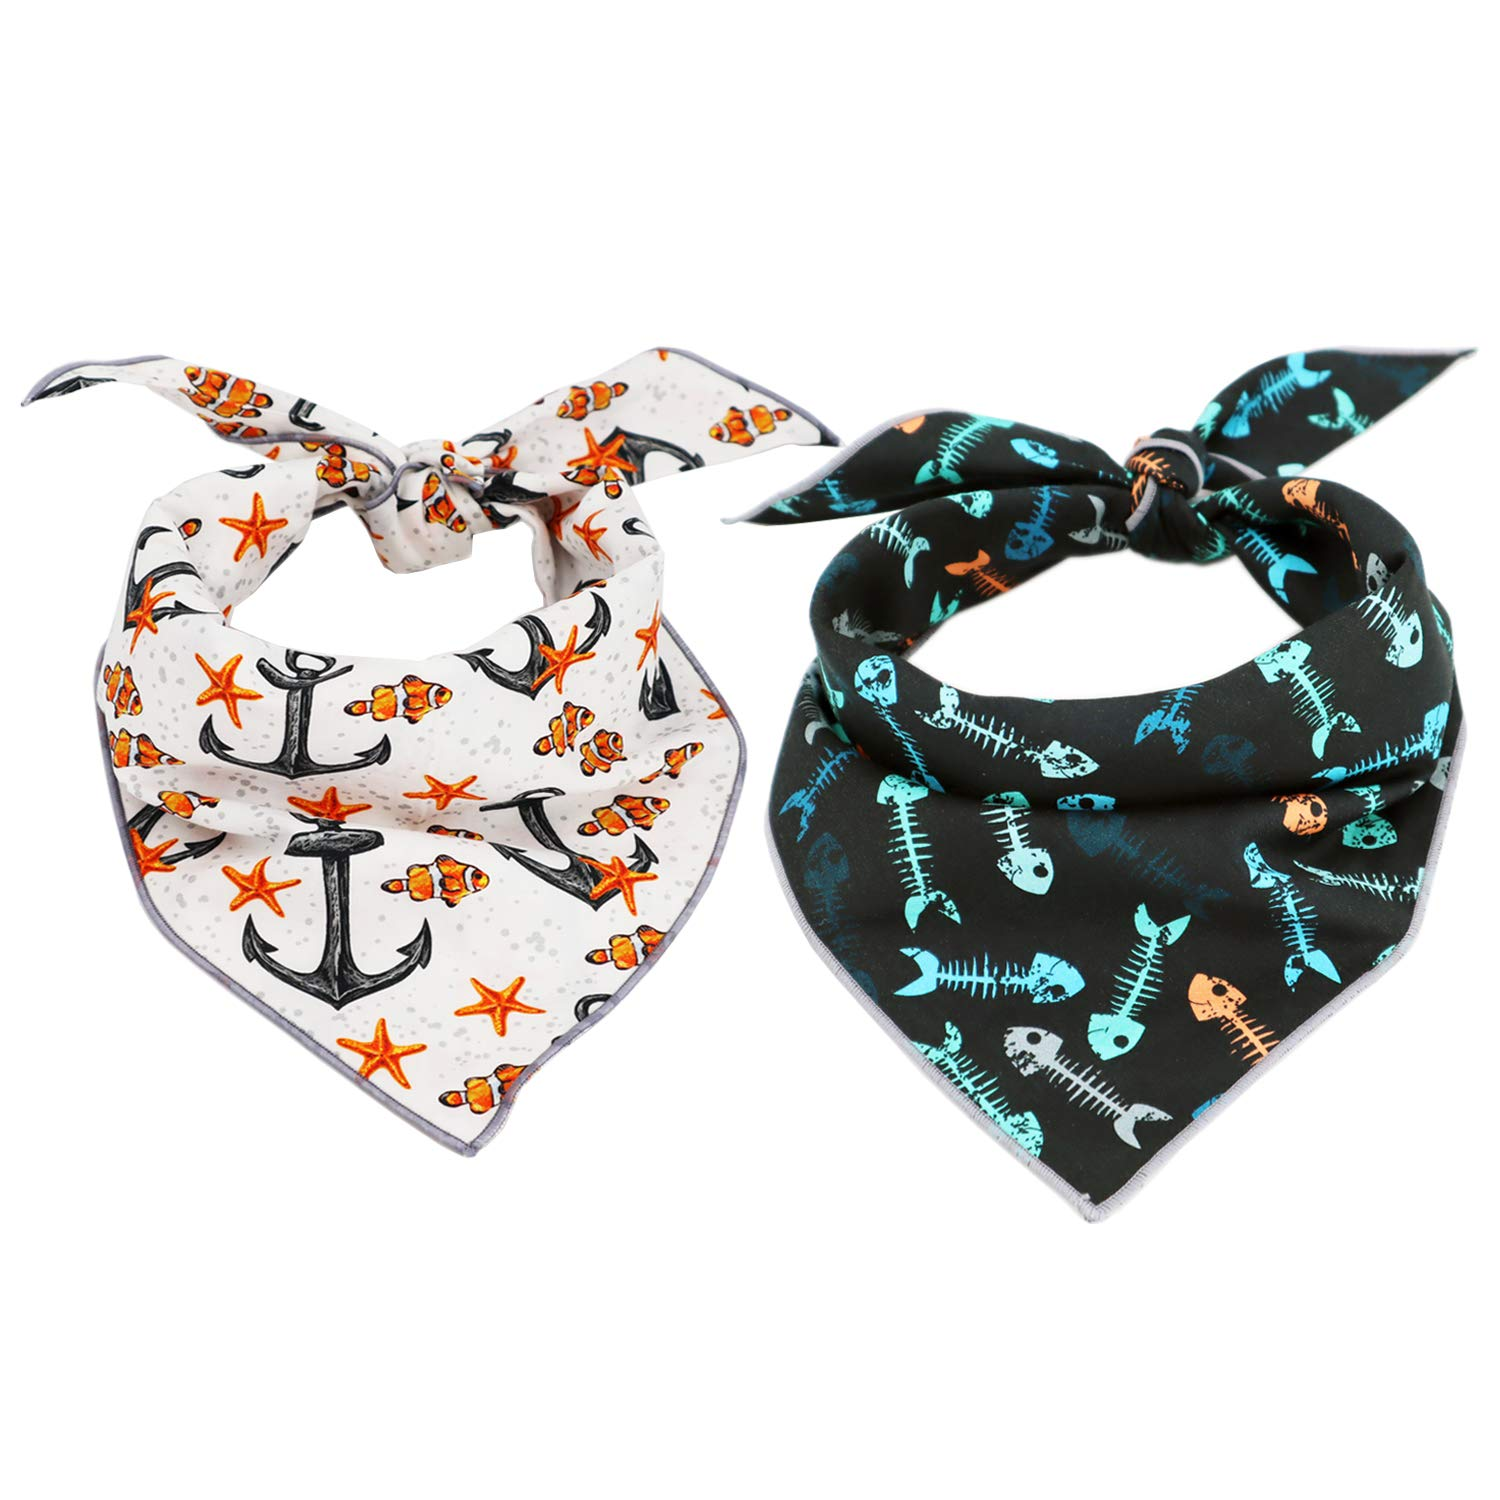 Dog Bandanas 2PCS Triangle Fashion Printing Dog Kerchief Set Scarfs Accessories For Dogs Cats Pets(L) by T.A. Bird